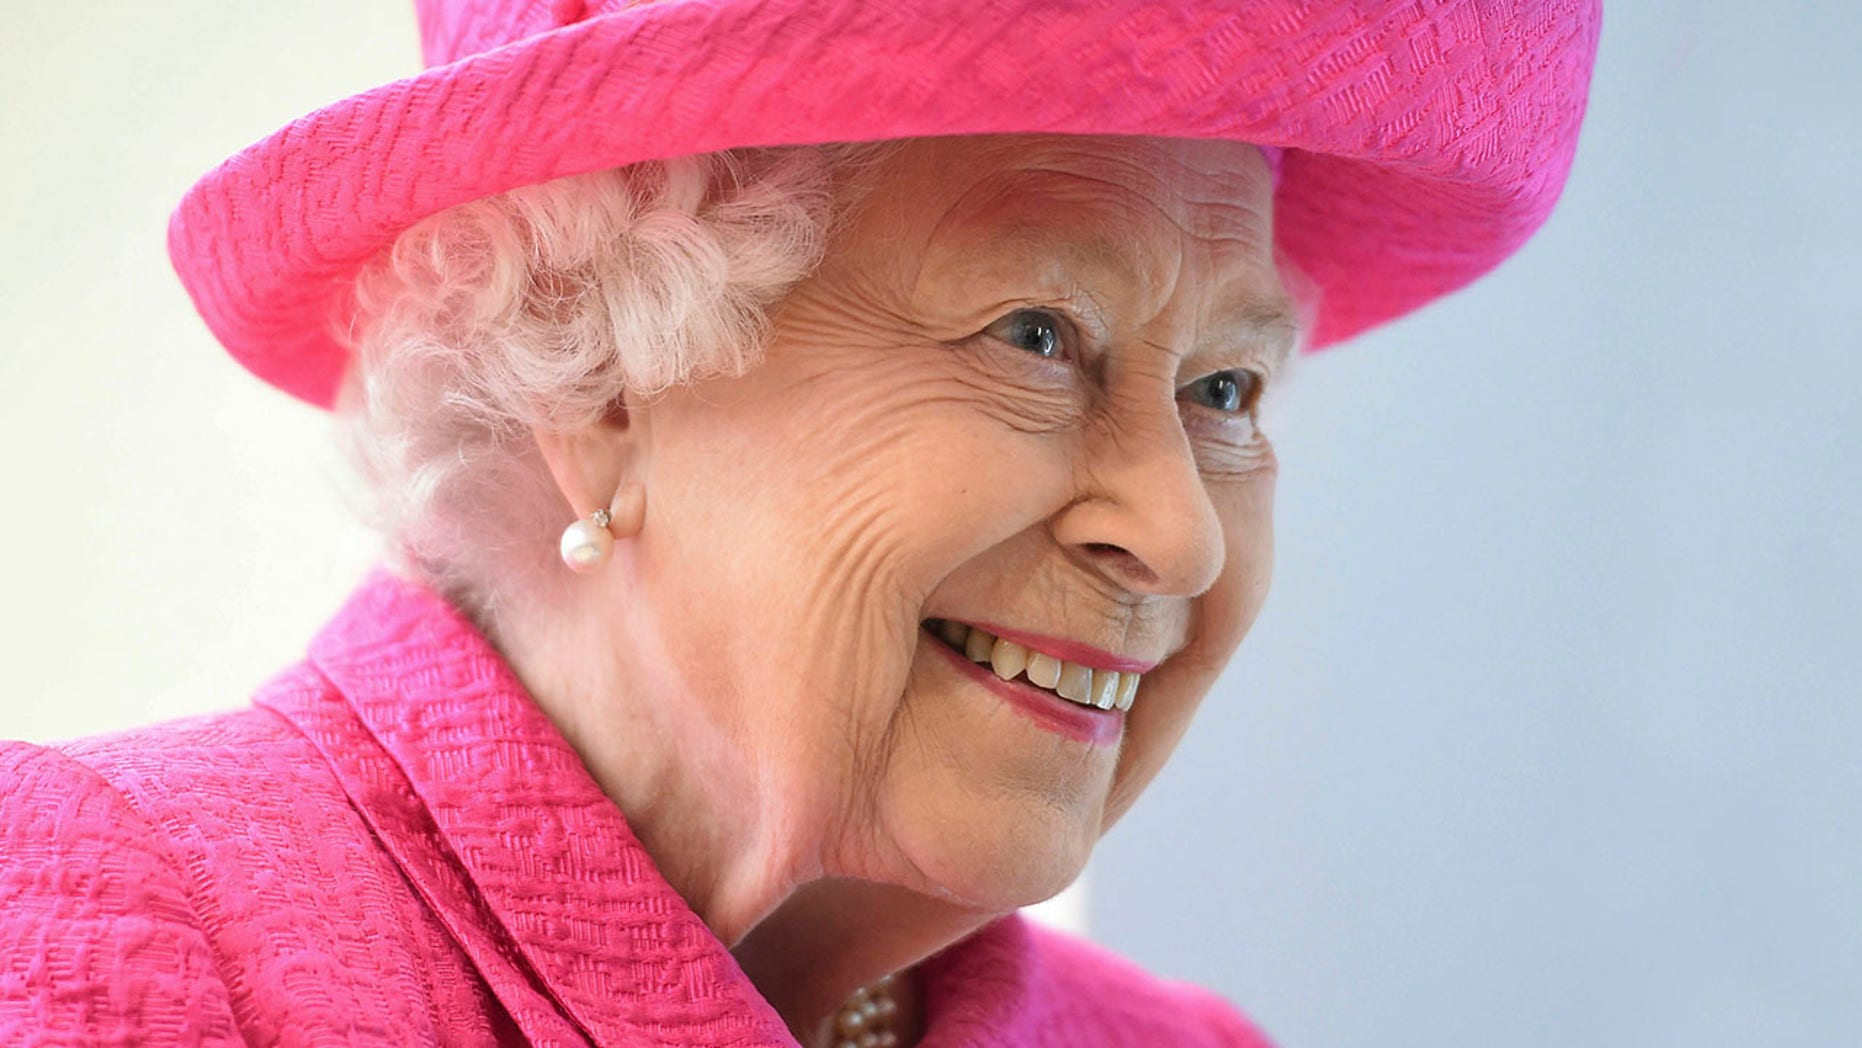 Britain's Queen Elizabeth II reacts during a revisit to a Royal Papworth Hospital in Cambridge, England, Tuesday Jul 9, 2019. The Queen will perspective some of a new state-of-the-art comforts during her revisit to a newly refurbished heading heart and lung dilettante Royal Papworth Hospital. (Joe Giddens/PA around AP)